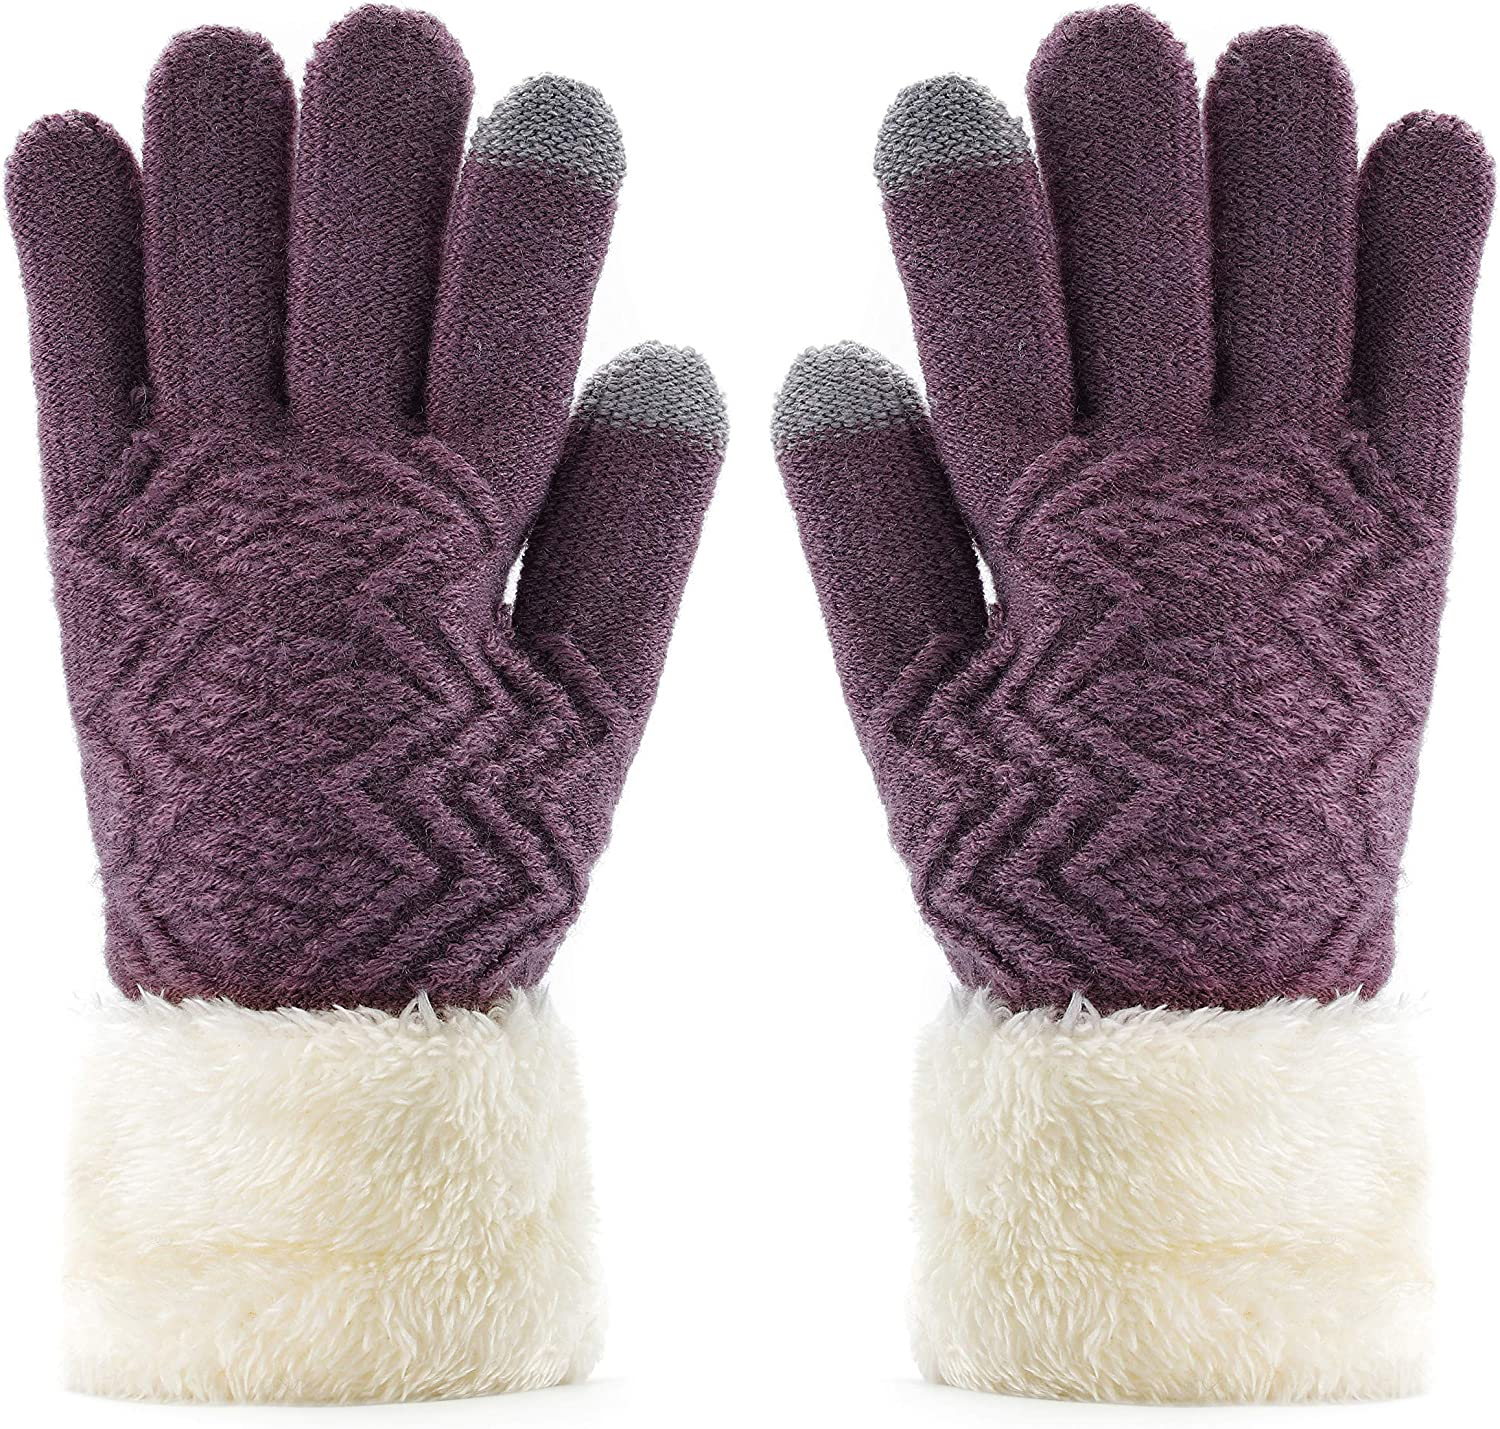 Urieo Winter Touchscreen Gloves Purple Warm Wool Knit Glove Thick Windproof Soft Fleece Lined Mittens Ski Outdoor Texting for Women and Girls